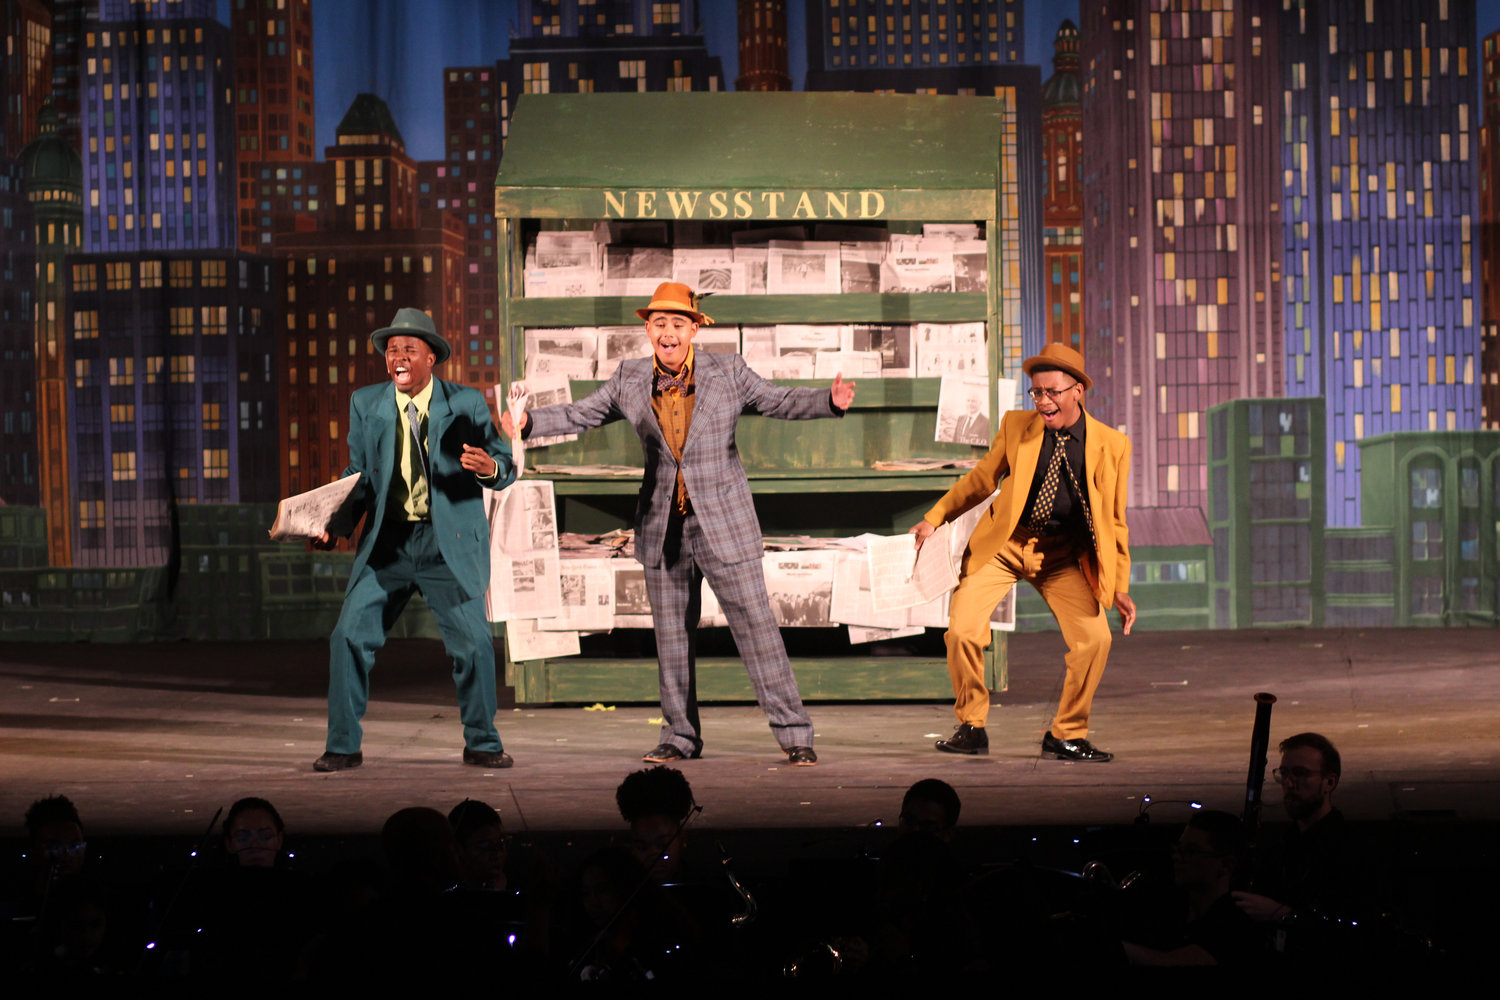 "Baldwin High School students presented ""Guys and Dolls"" in 2019. In the opening number, ""Fugue for Tinhorns,"" gamblers Benny Southstreet, Nicely-Nicely Johnson and Rusty Charlie, played by Chris Holman, Daniel Polonia and Jaylin Thomas, led off the classic story of love and gambling in 1920s Times Square."